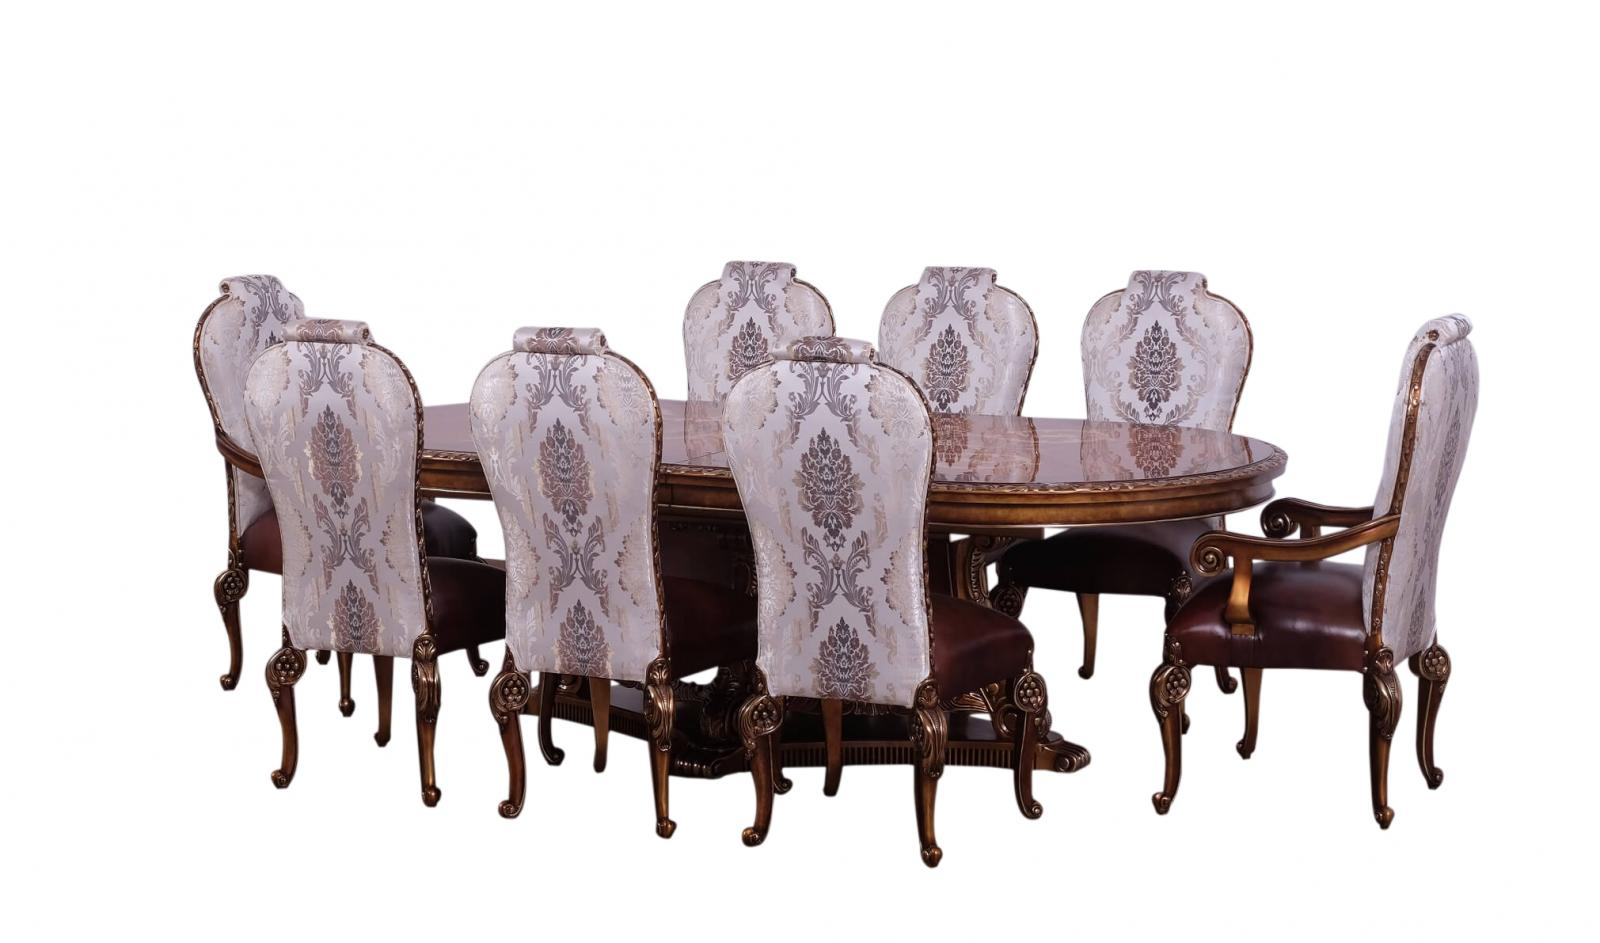 Contemporary, Modern Bronze, Gold  and Wood, Solid Hardwood Dining Table Set 9 pcs BELLAGIO by European Furniture